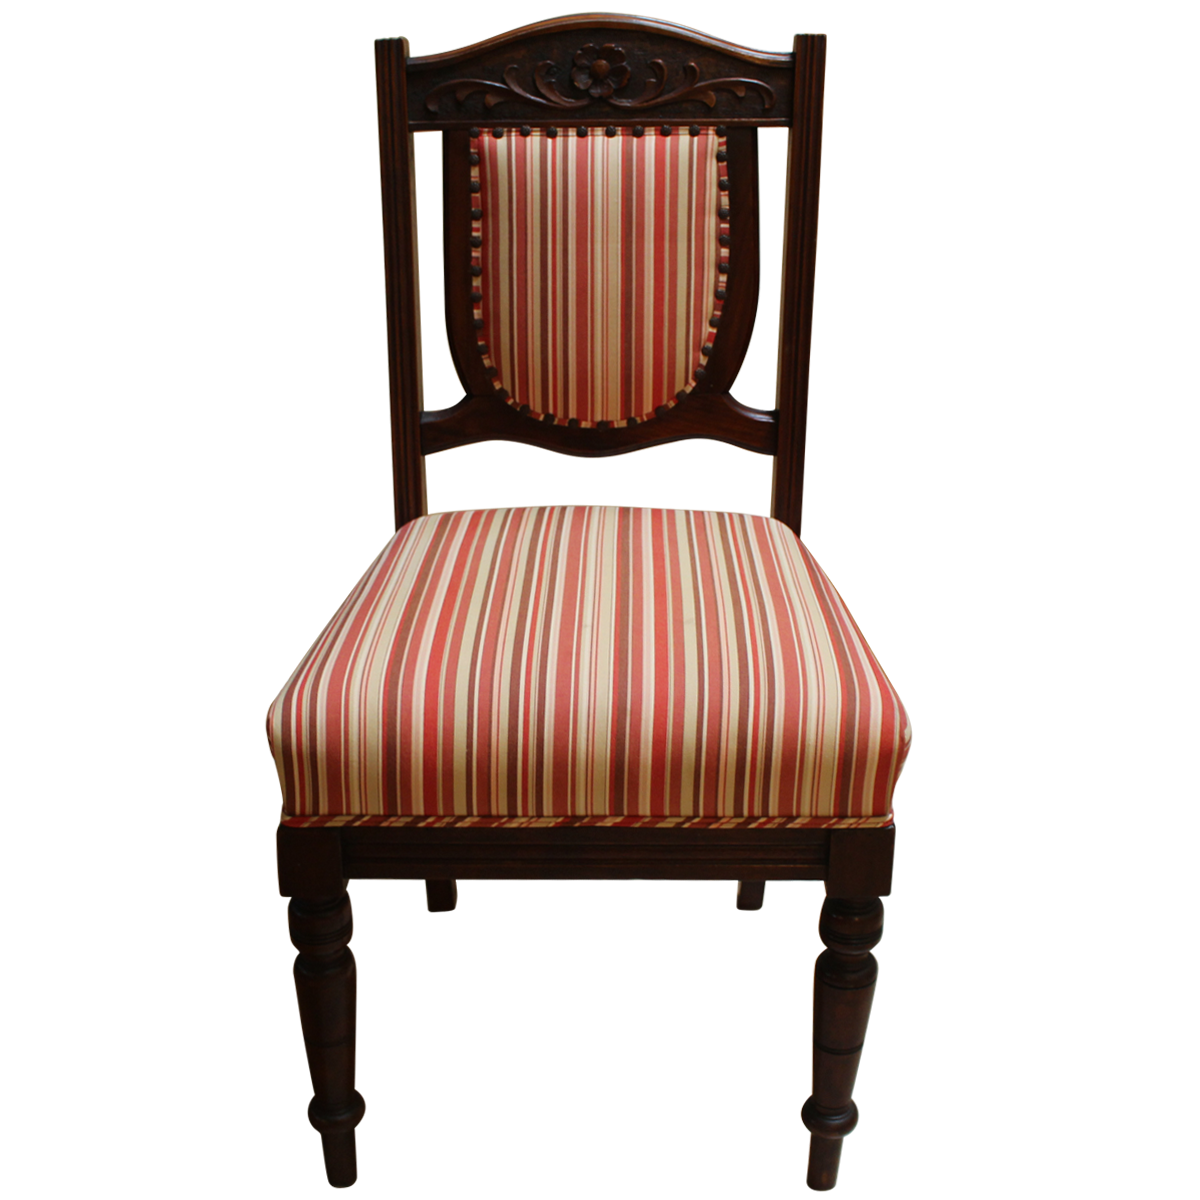 Free Icons PngFurniture Seating Vintage Wooden Striped Chairs